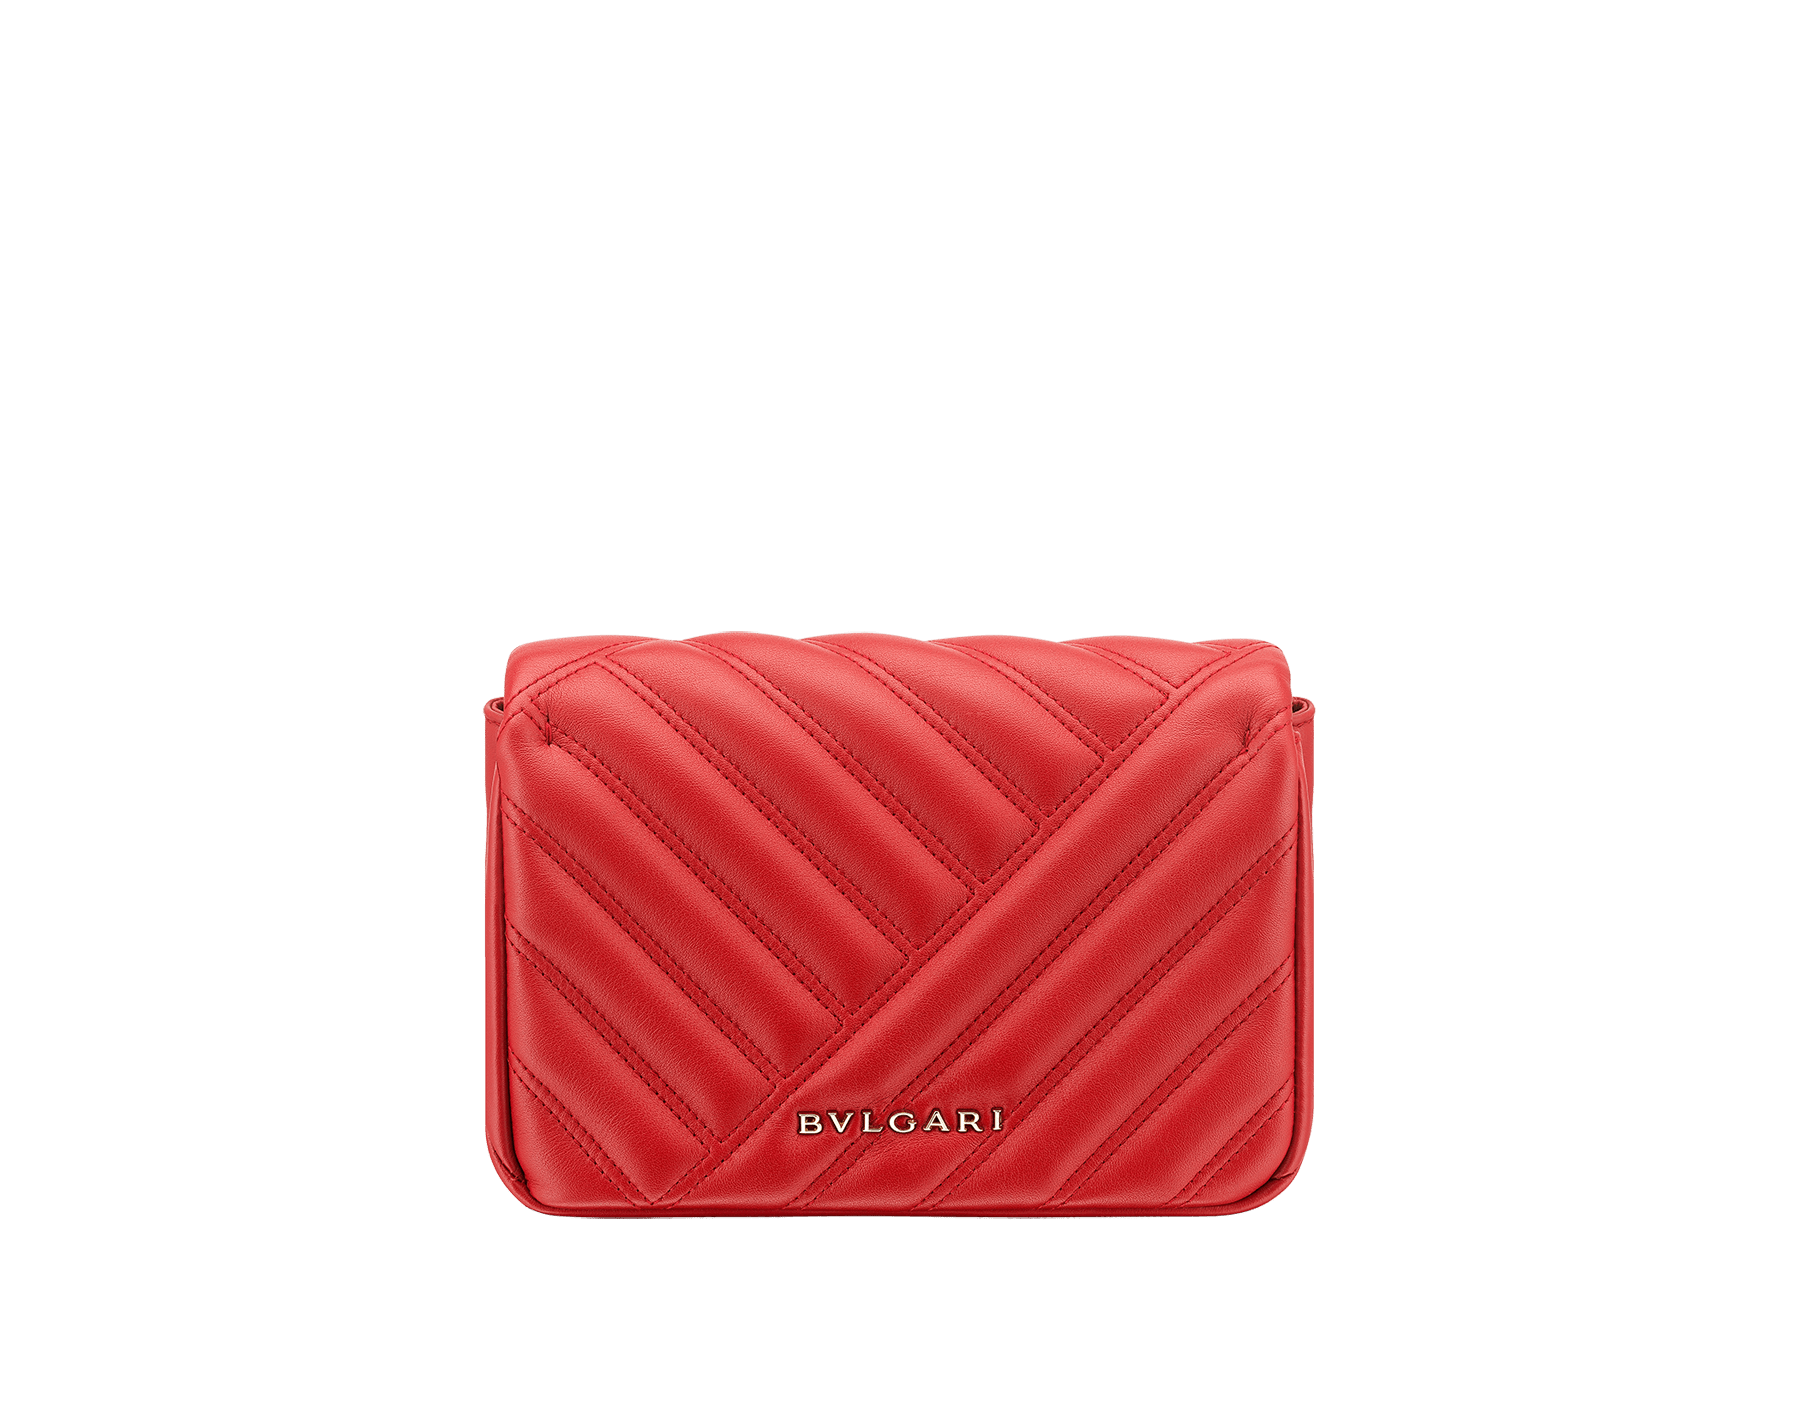 Serpenti Cabochon micro bag in soft matelassé carmine jasper calf leather, with a graphic motif. Brass light gold plated tempting snakehead closure in carmine jasper enamel and black onyx eyes. 288756 image 3